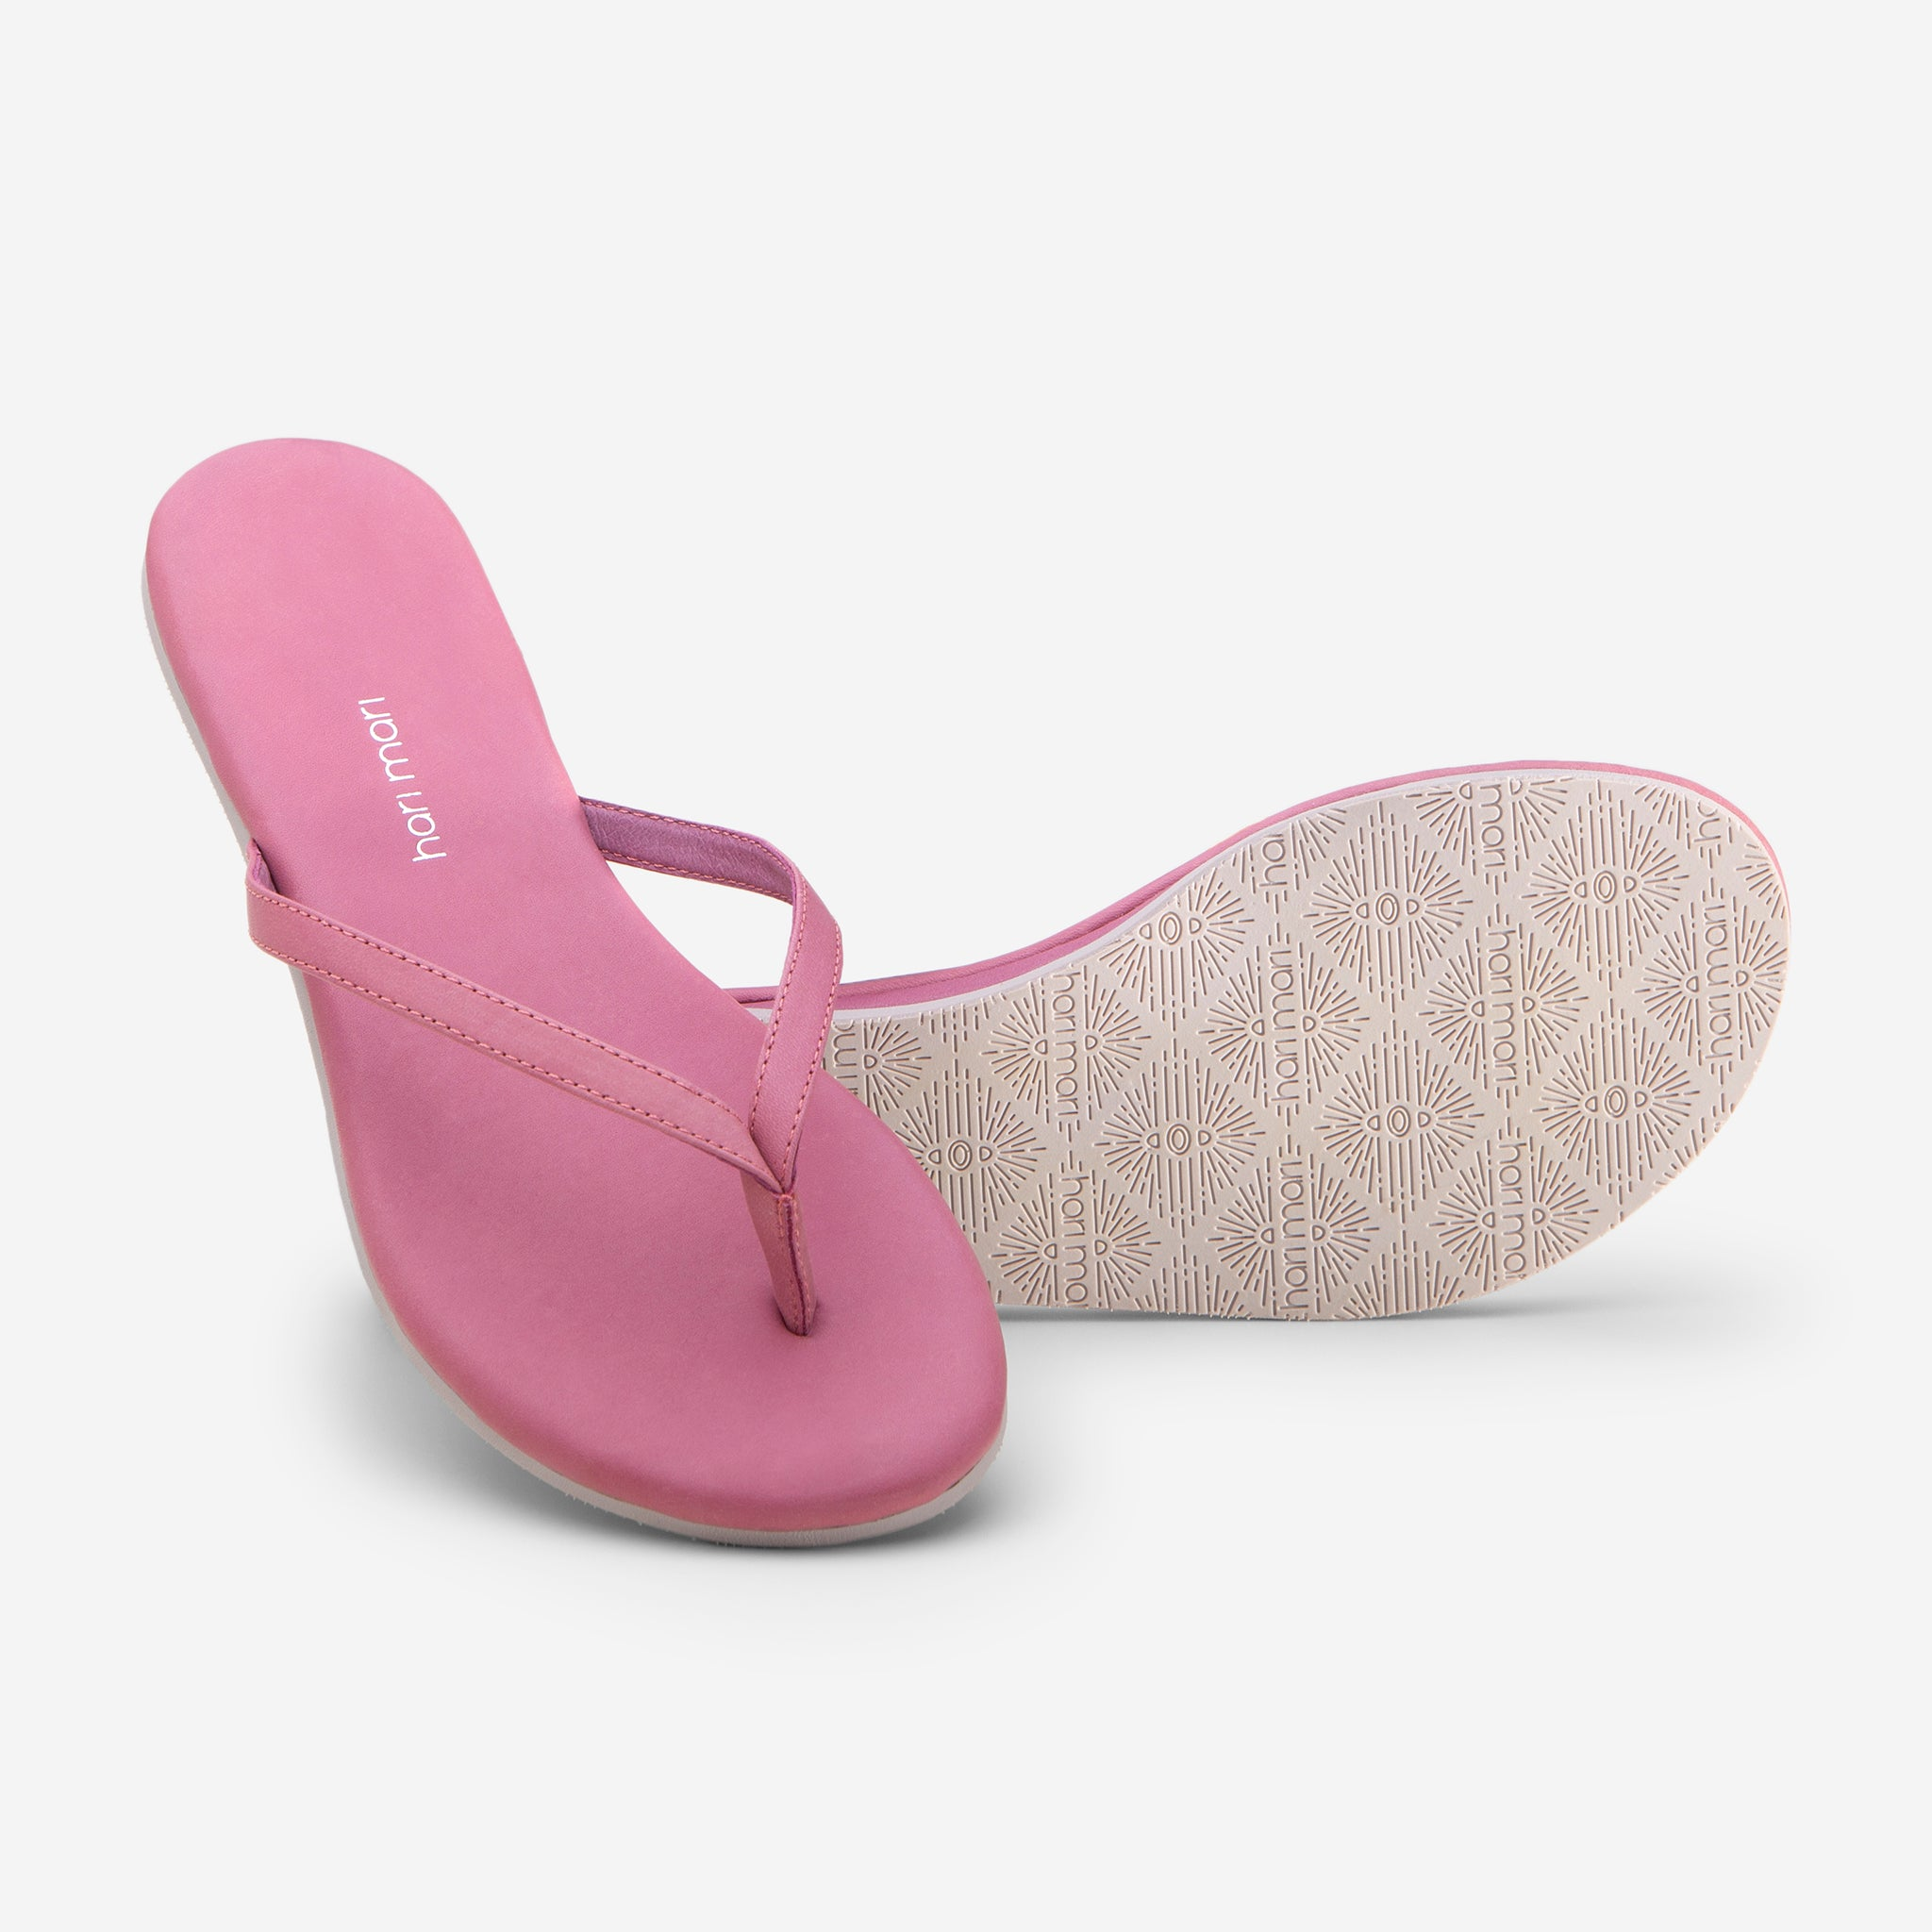 Hari Mari Women's The Mari Flip Flop in Rose showing flip flop and bottom of flip flop rubber outsole on white background